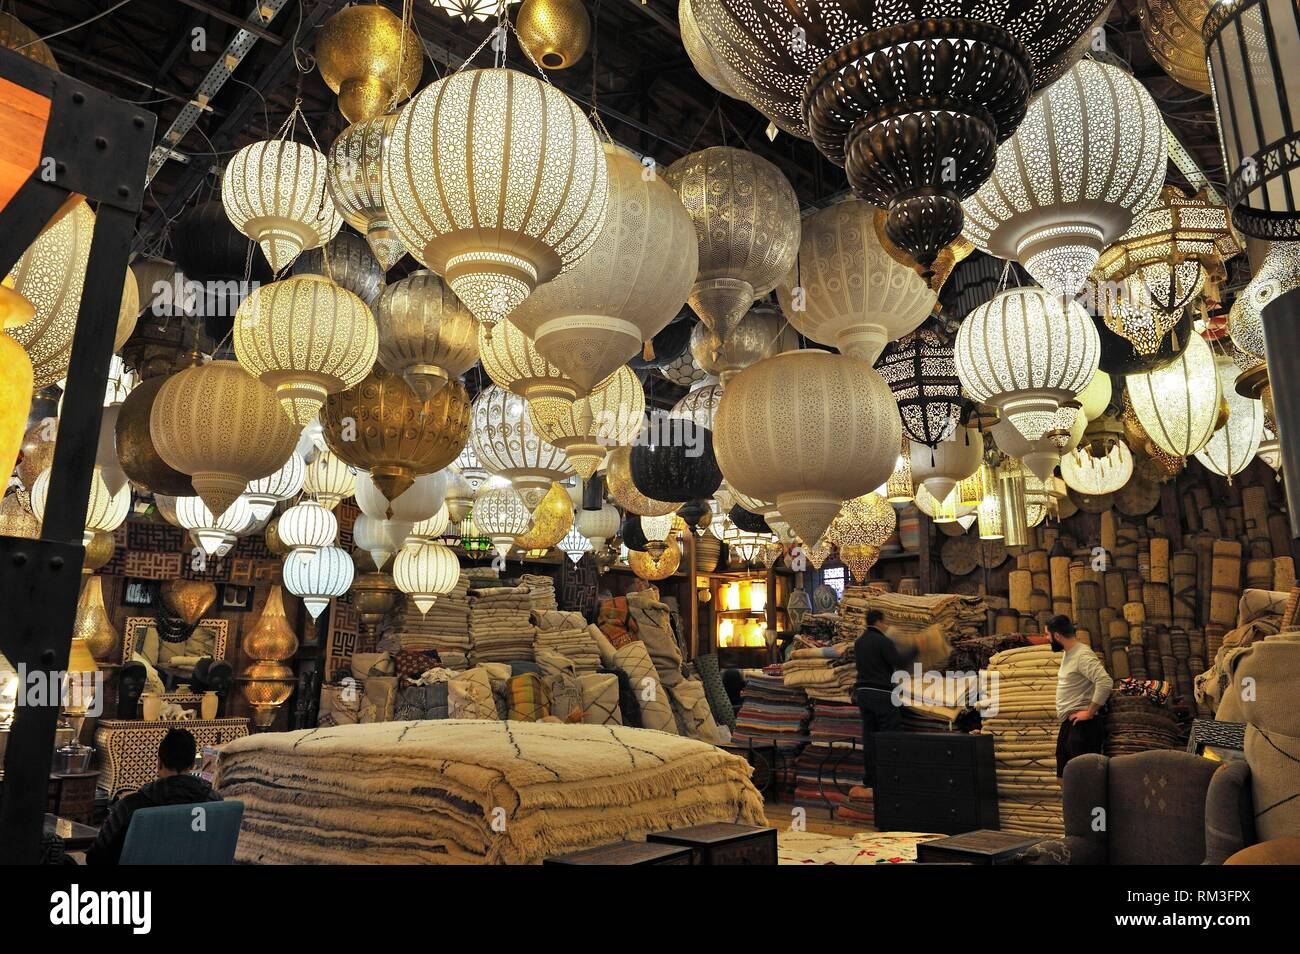 Morrocan furniture and interior design shop of Mustapha Blaoui, Bab Doukkala in the Medina, Marrakesh, Morocco, North Africa. - Stock Image